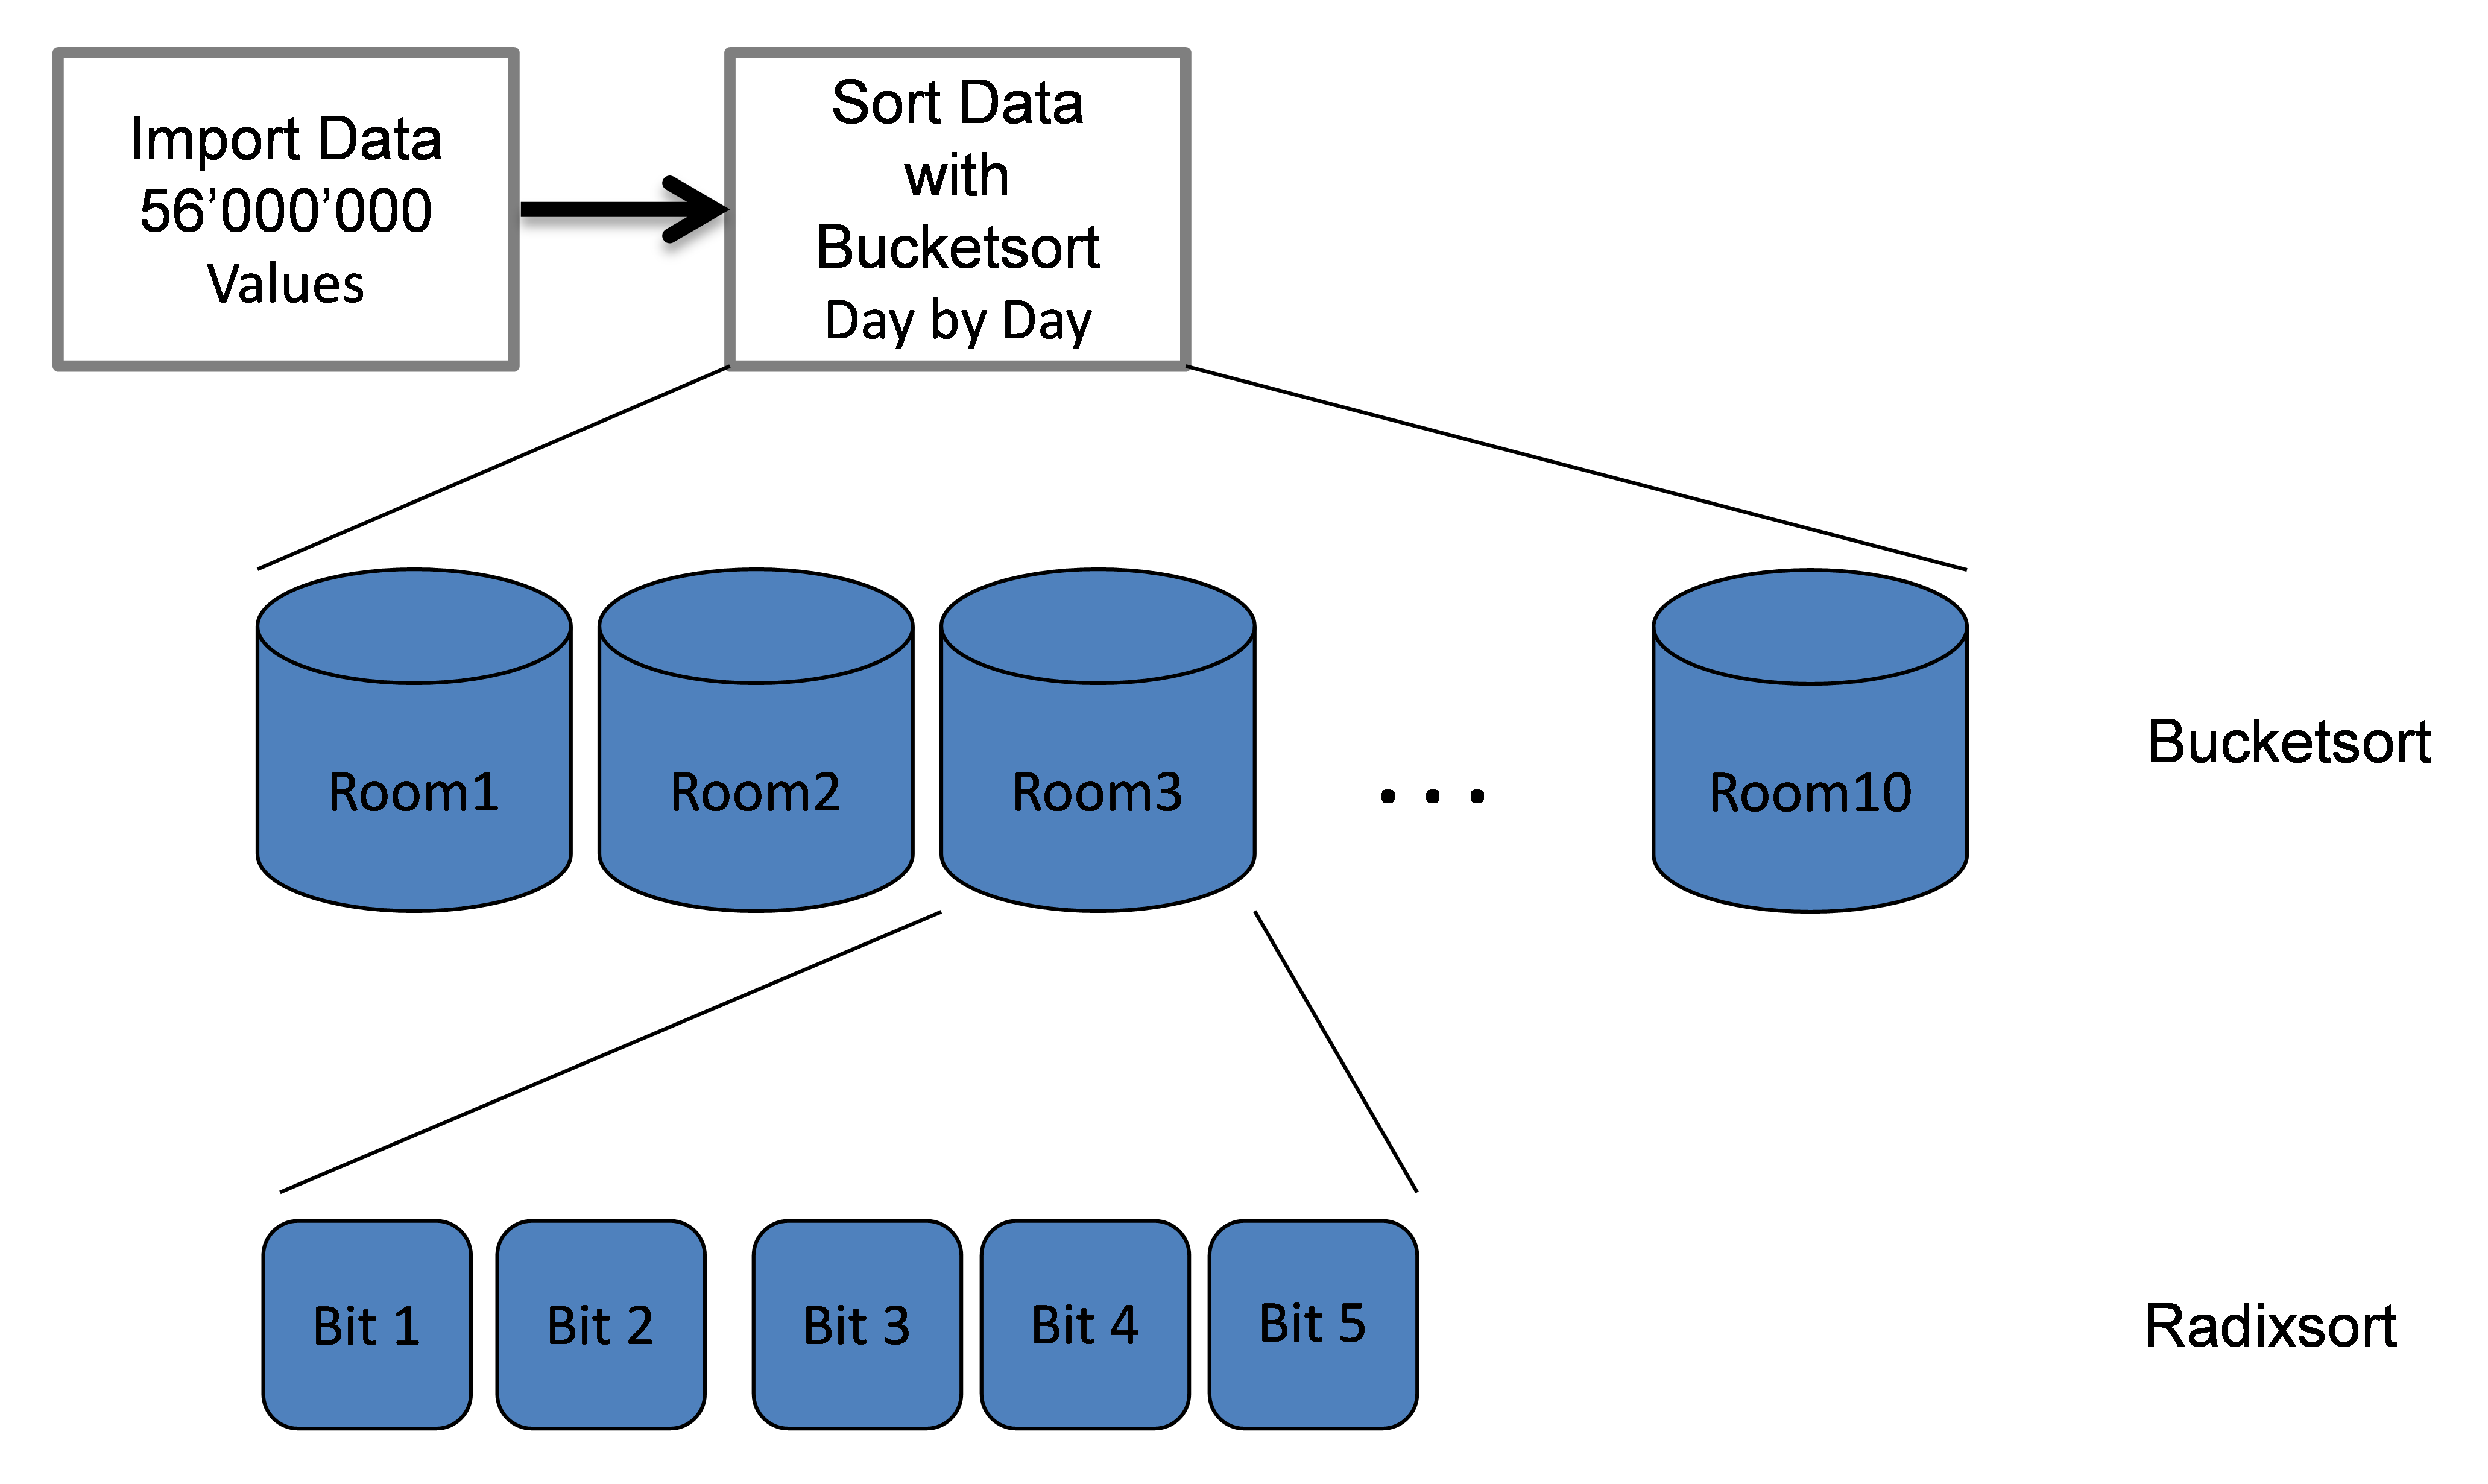 Jmir A Web Based Non Intrusive Ambient System To Measure And Parts Diagram Moreover Microsoft Laptop Puter Clip Art On Of Combined Sort Algorithm Consists Bucketsort Radixsort Applied The Data